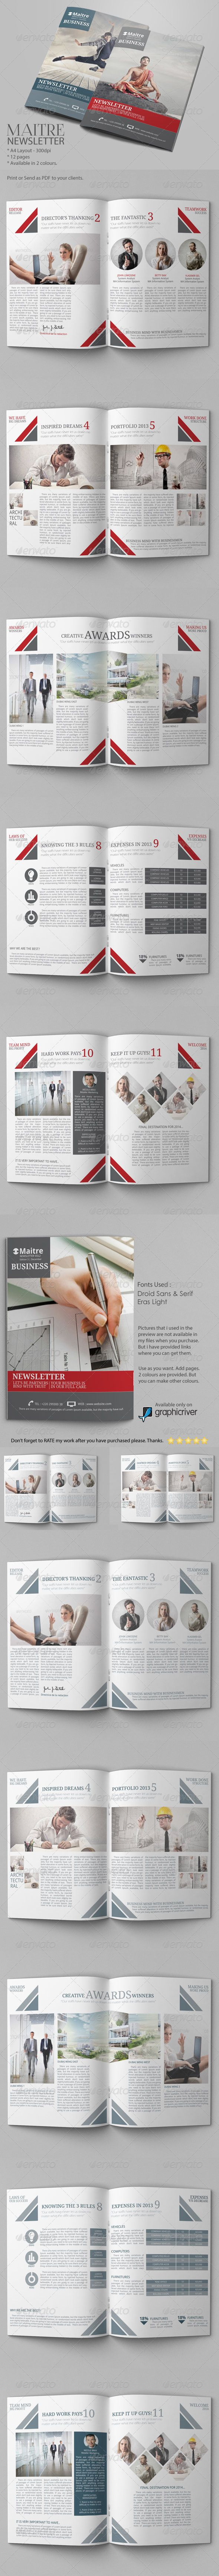 Best Company Newsletter Images On   Newsletter